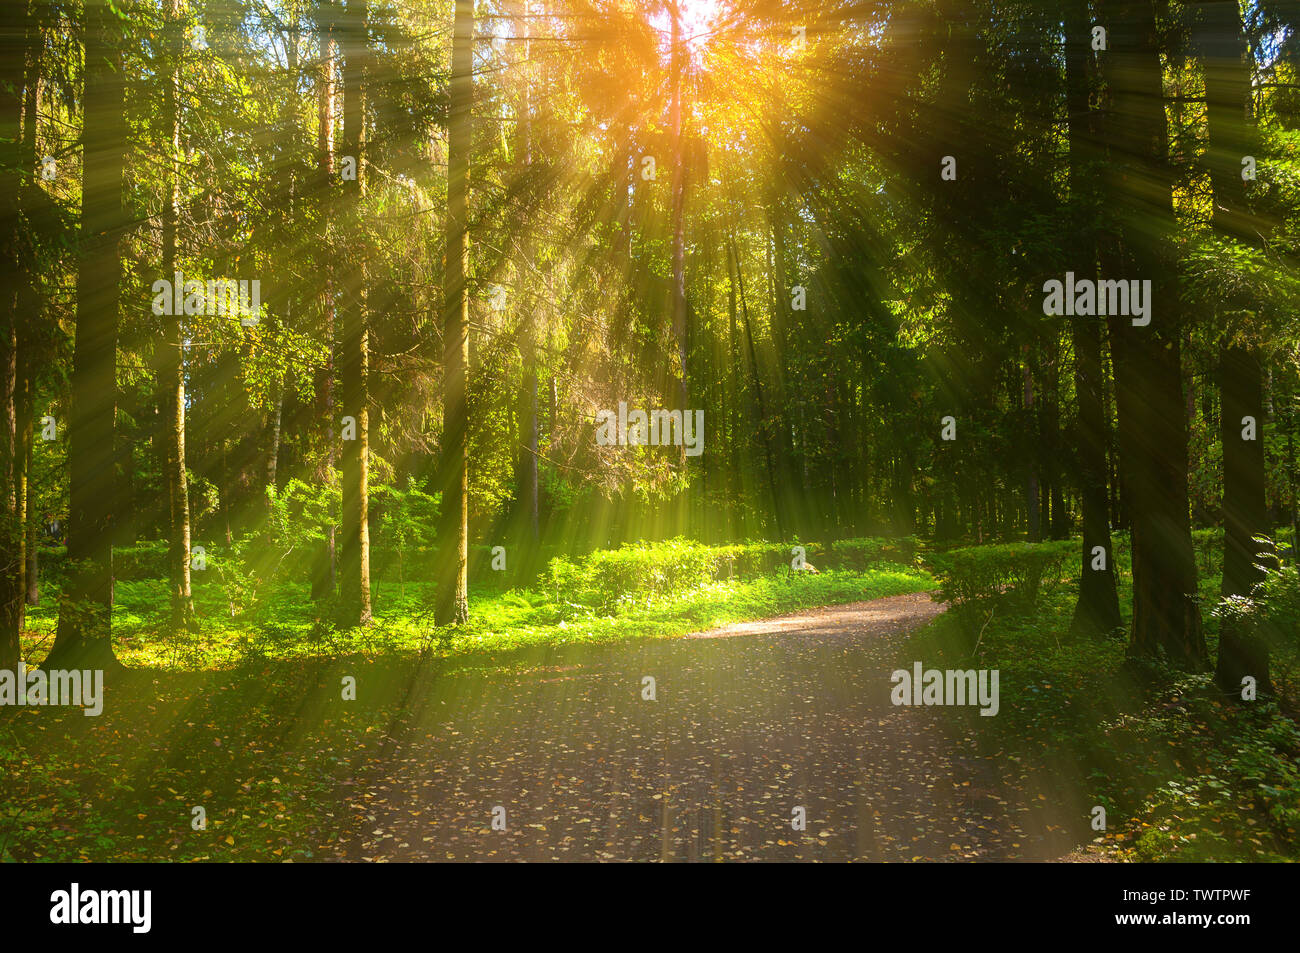 Autumn forest landscape with trees in the forest and fallen autumn leaves on the ground in sunny autumn weather. Sunny autumn forest nature - Stock Image